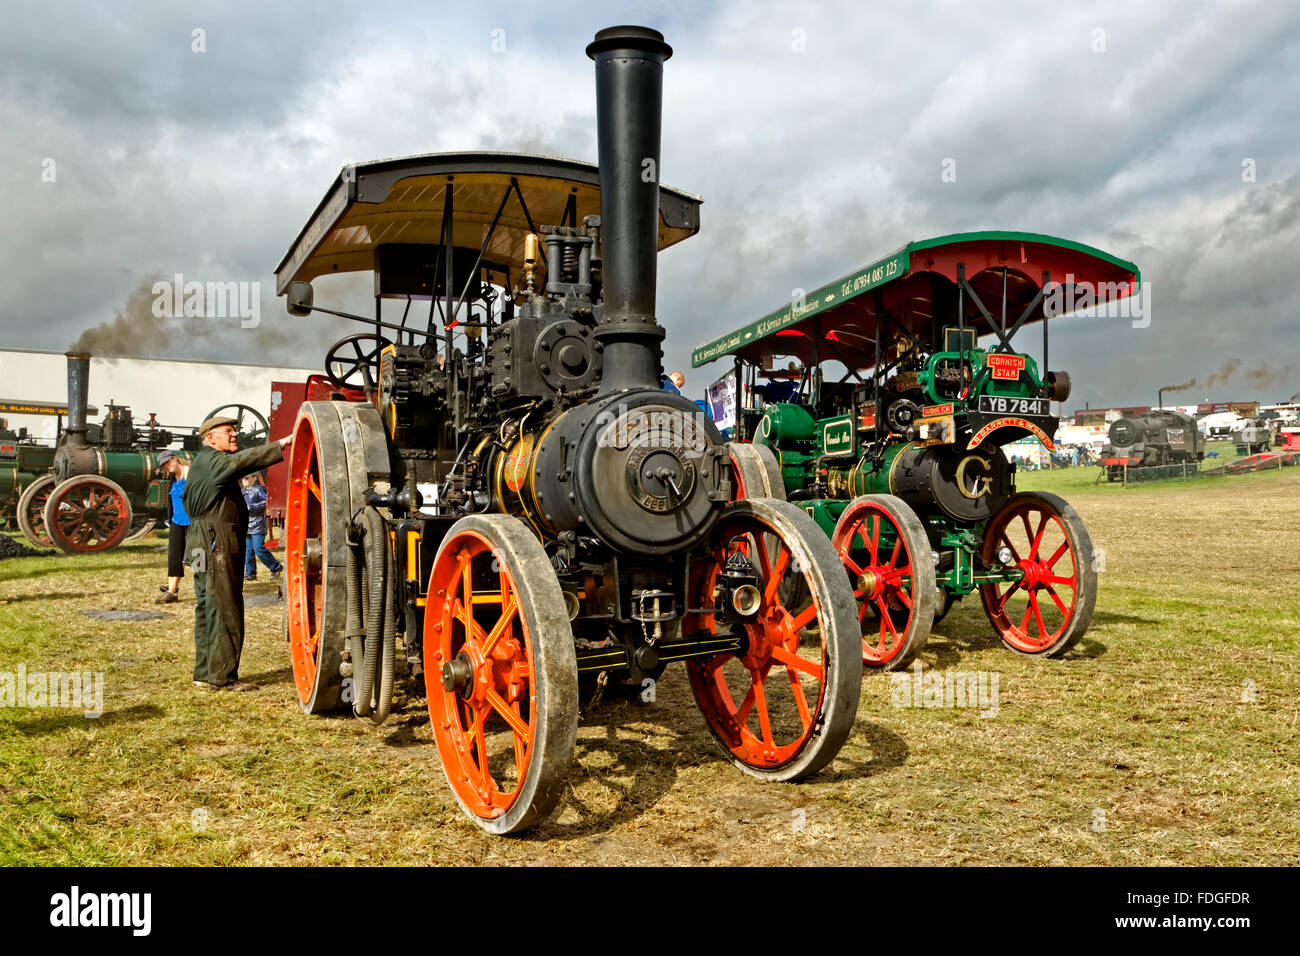 Steam Traction Engines at the 2011 Great Dorset Steam Fair at Tarrant Hinton, Dorset, United Kingdom. - Stock Image